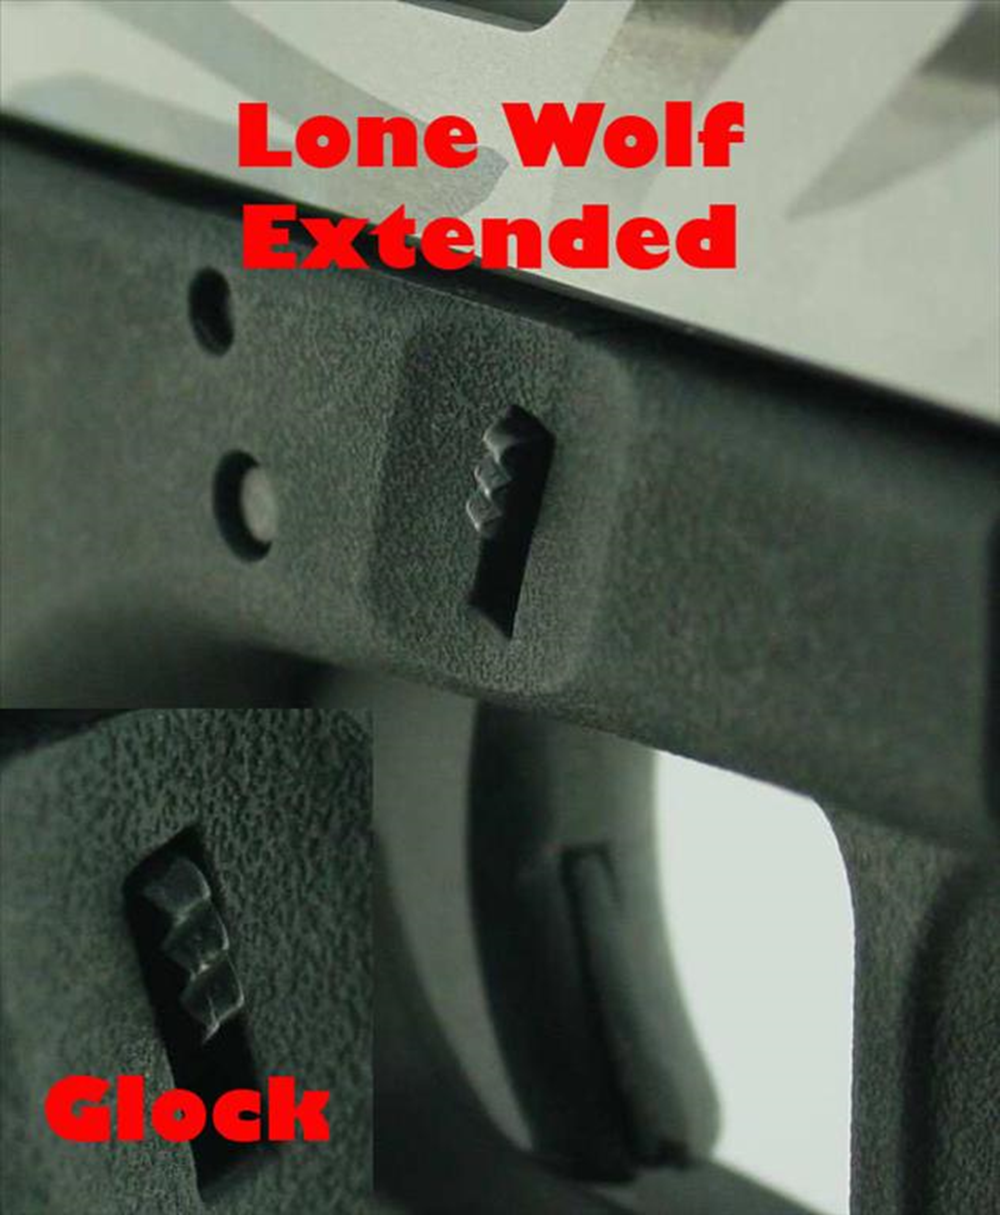 LWD vs Glock slide lock lever